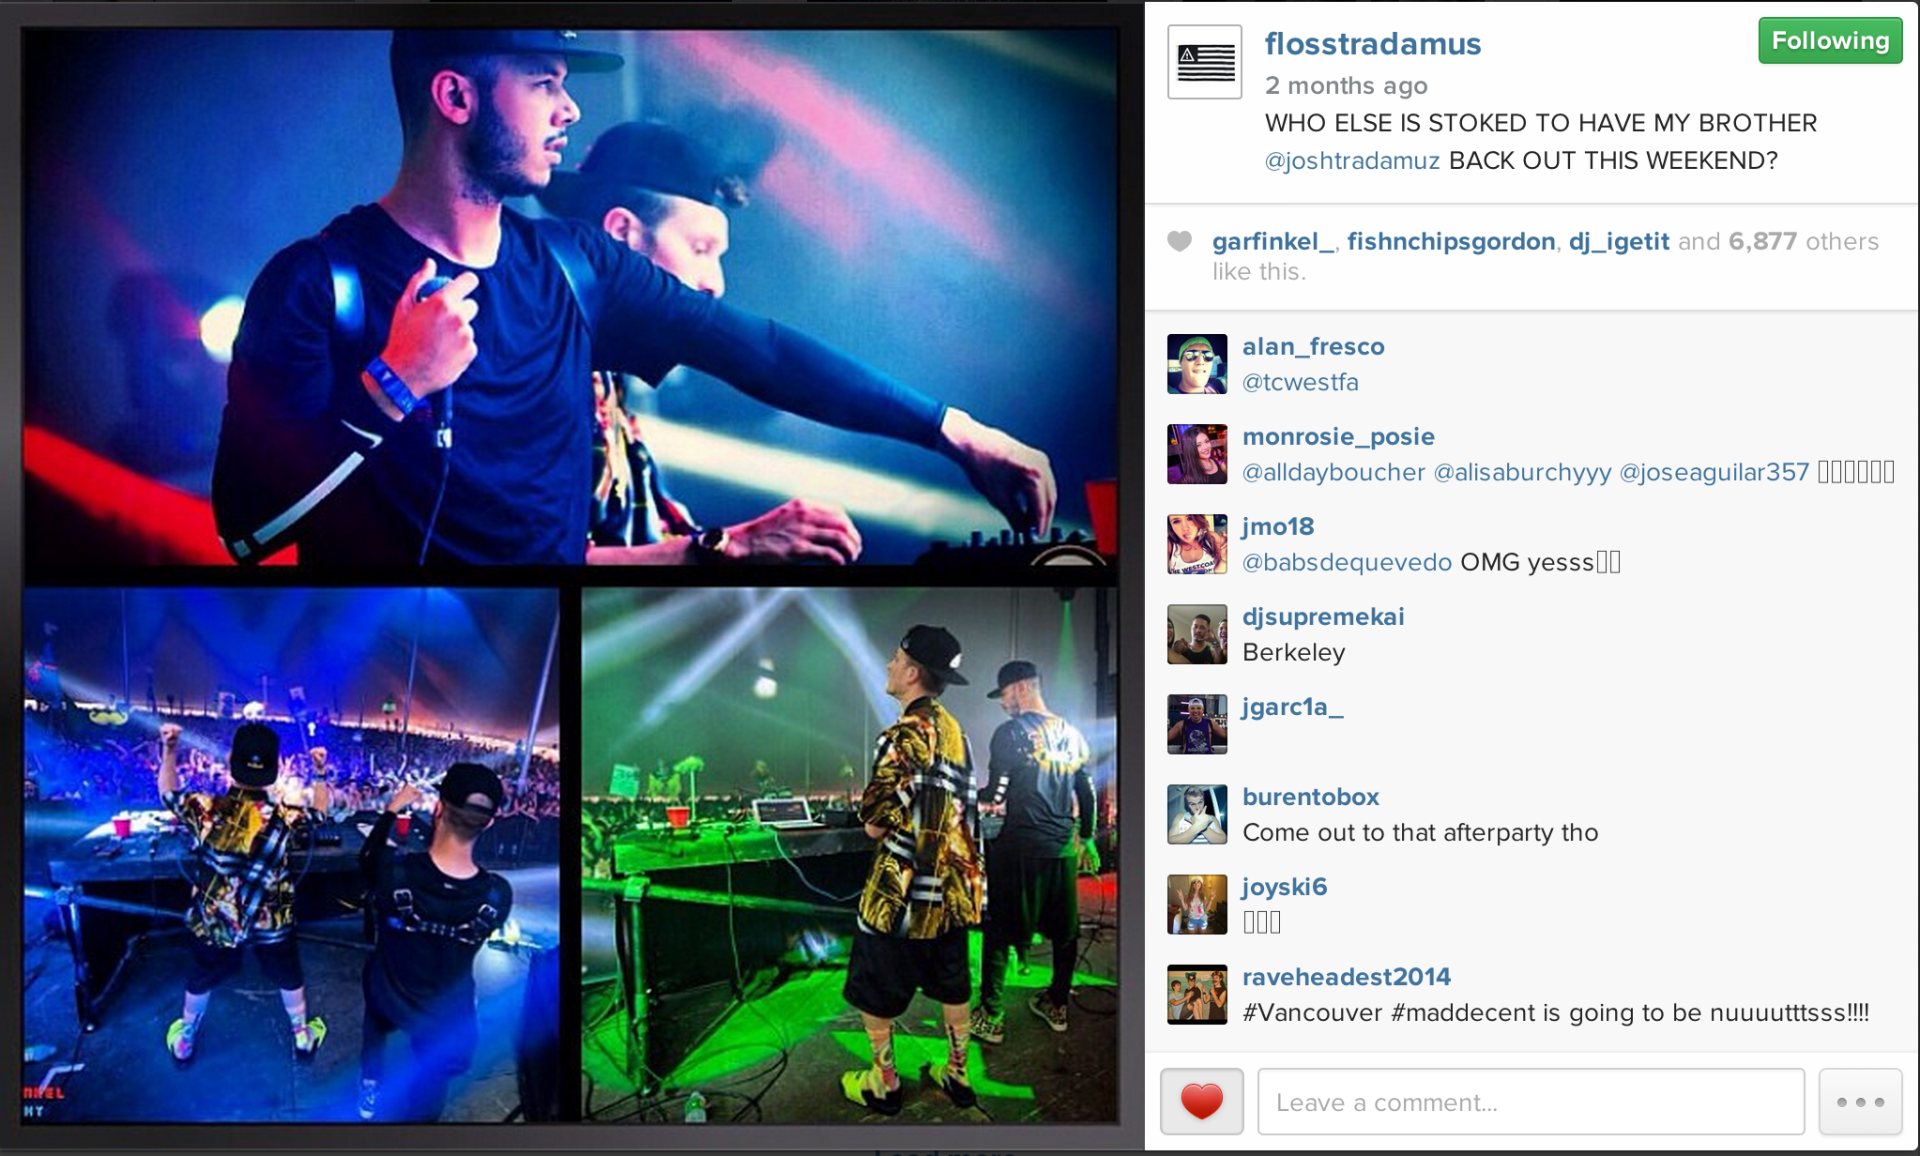 Flosstradamus sharing my photo on Instagram.